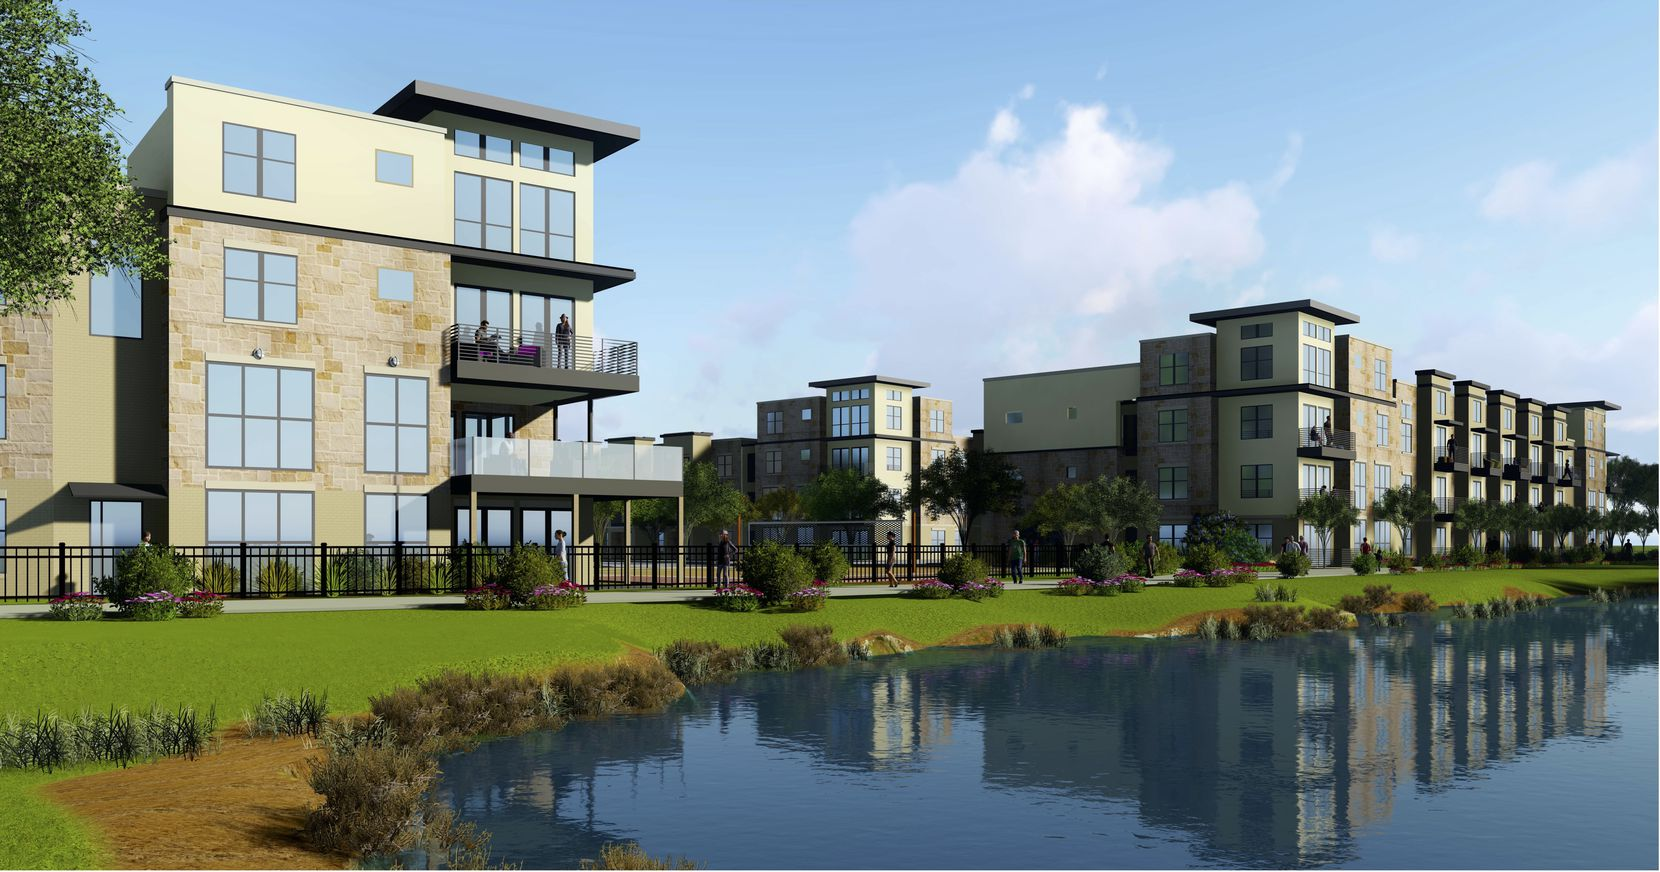 The Mercer Crossing apartment project is north of LBJ Freeway.